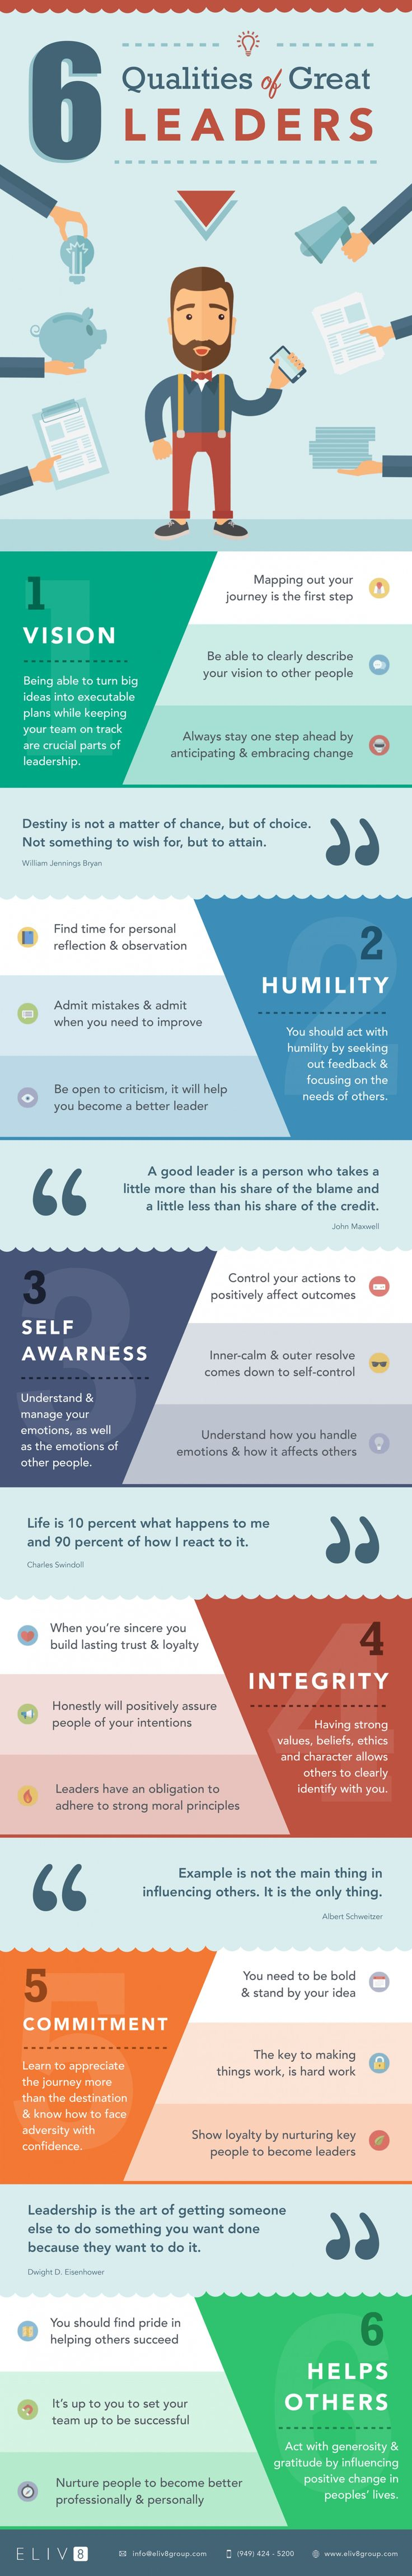 Top 6 Qualities of Great Leaders --shared by billytrail on May 30, 2015 - See more at: http://visual.ly/top-6-qualities-great-leaders-0#sthash.Wb2Z1xbm.dpuf